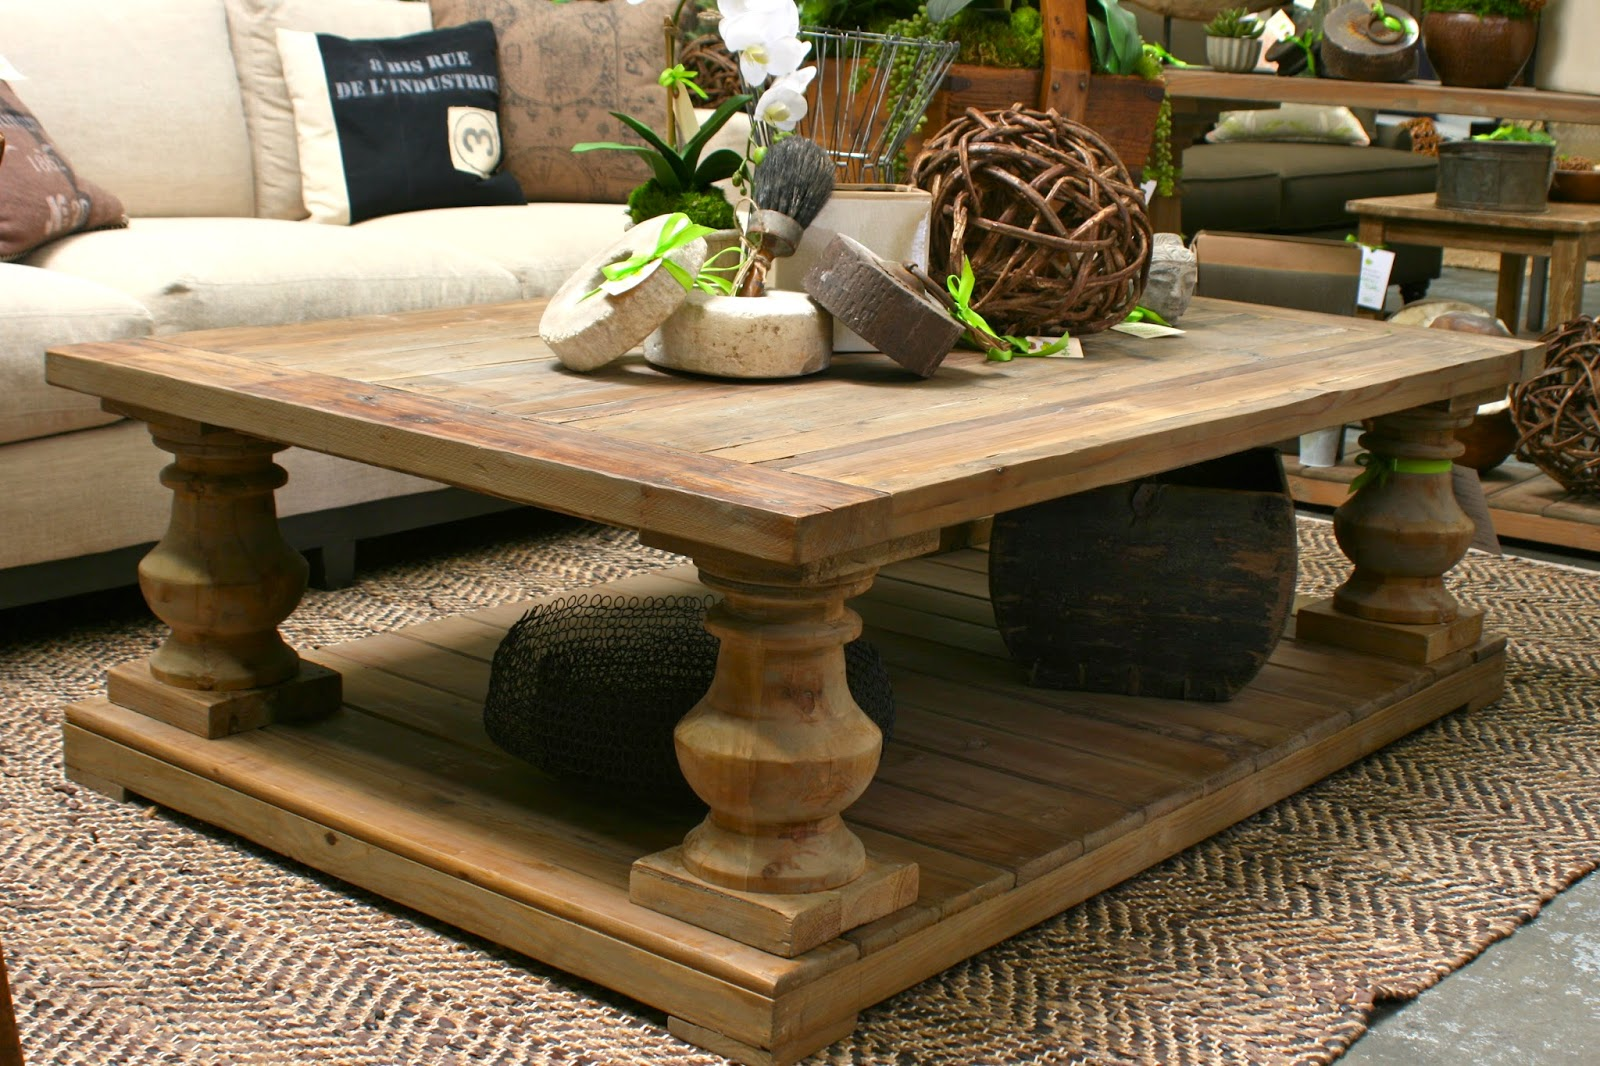 Stratford Coffee Table 999 60 X 40. Chartreuse Home Furnishings March 2017